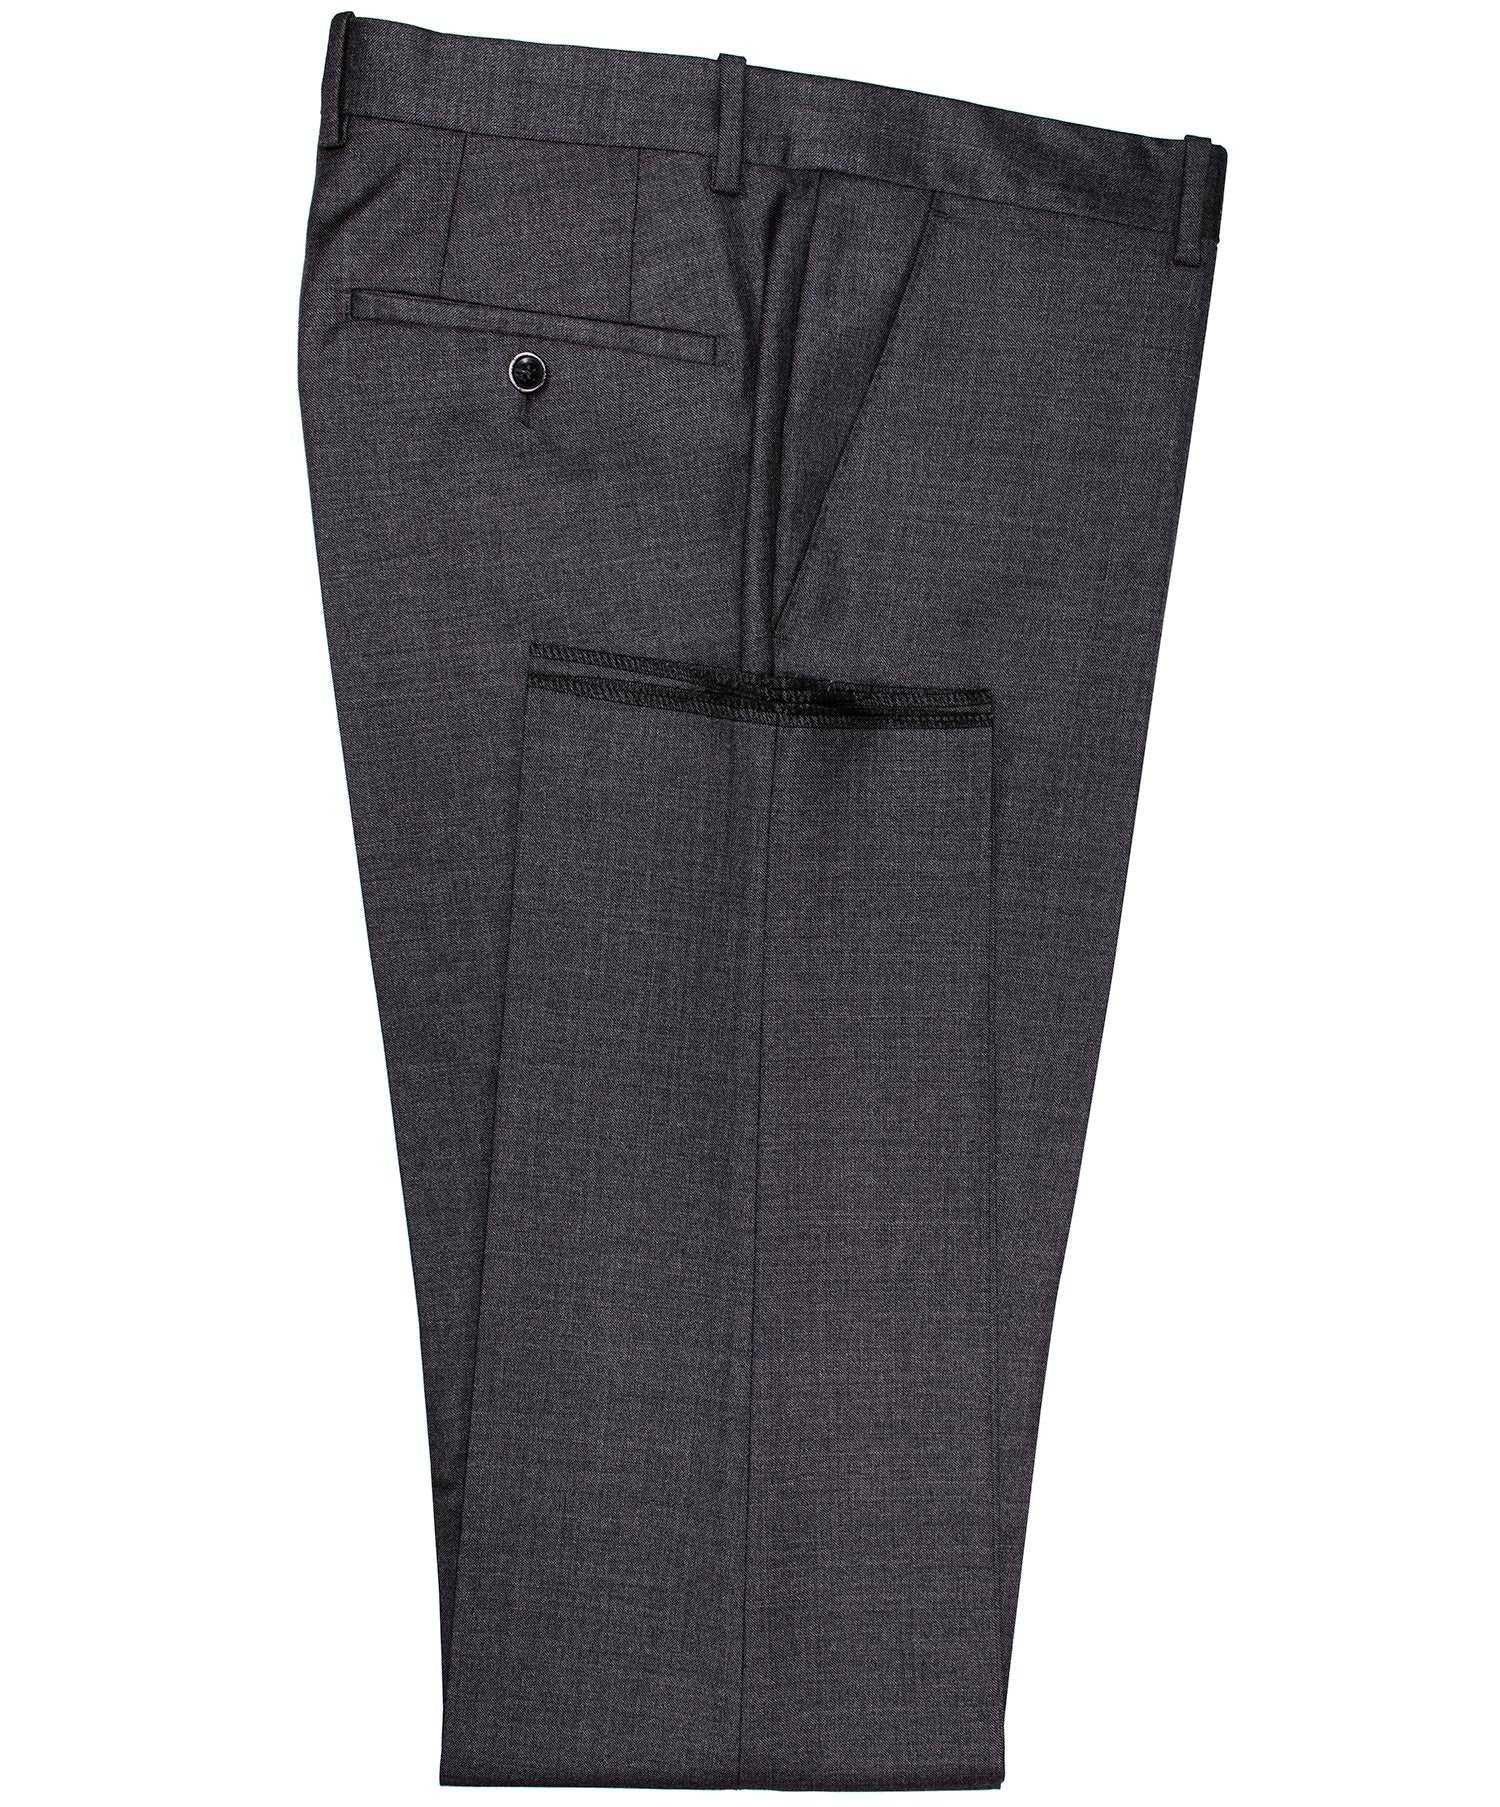 Dark Grey Separates Dress Pant